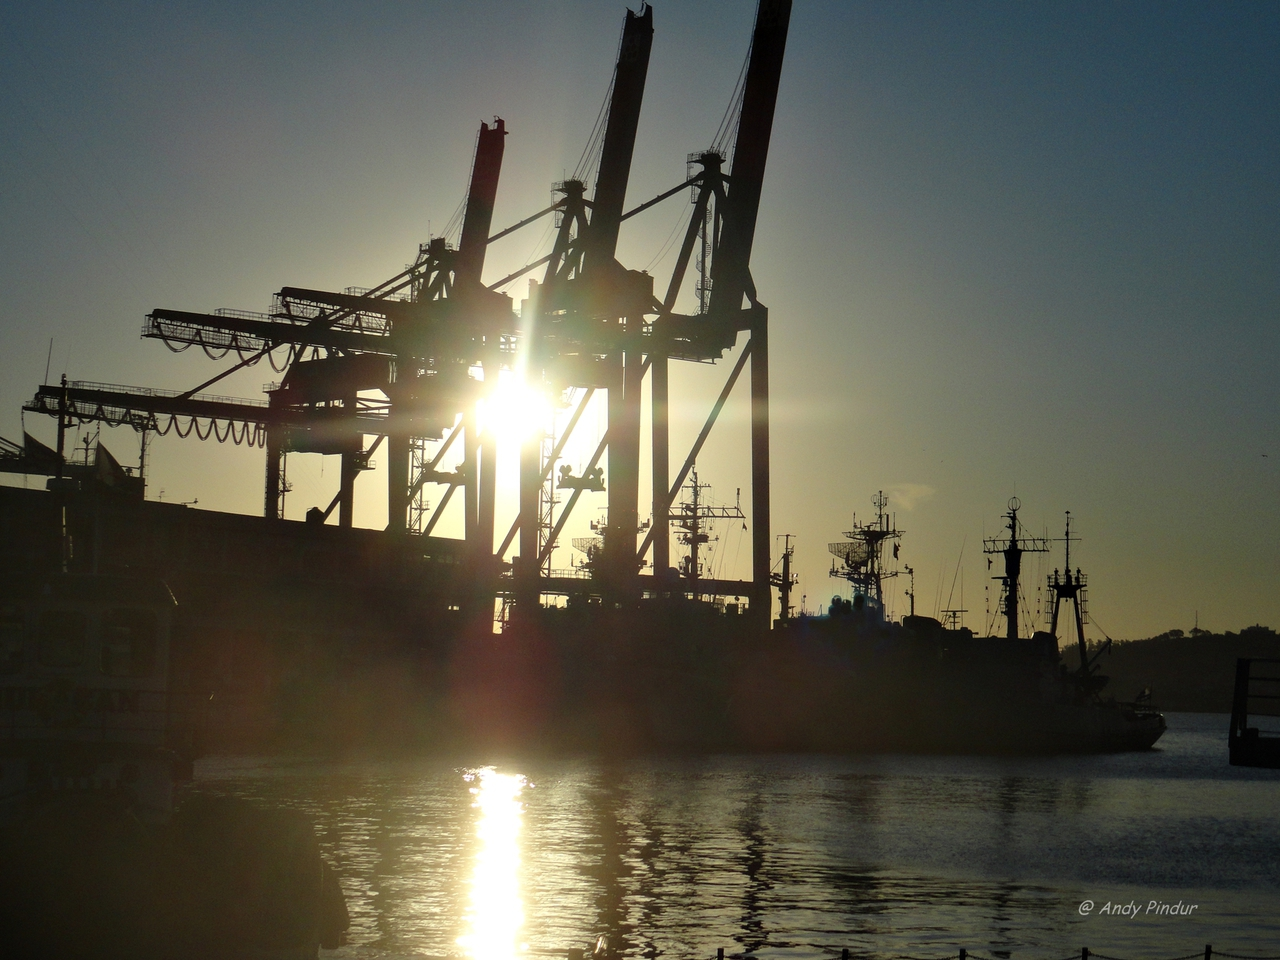 barco, montevideo, and ship image